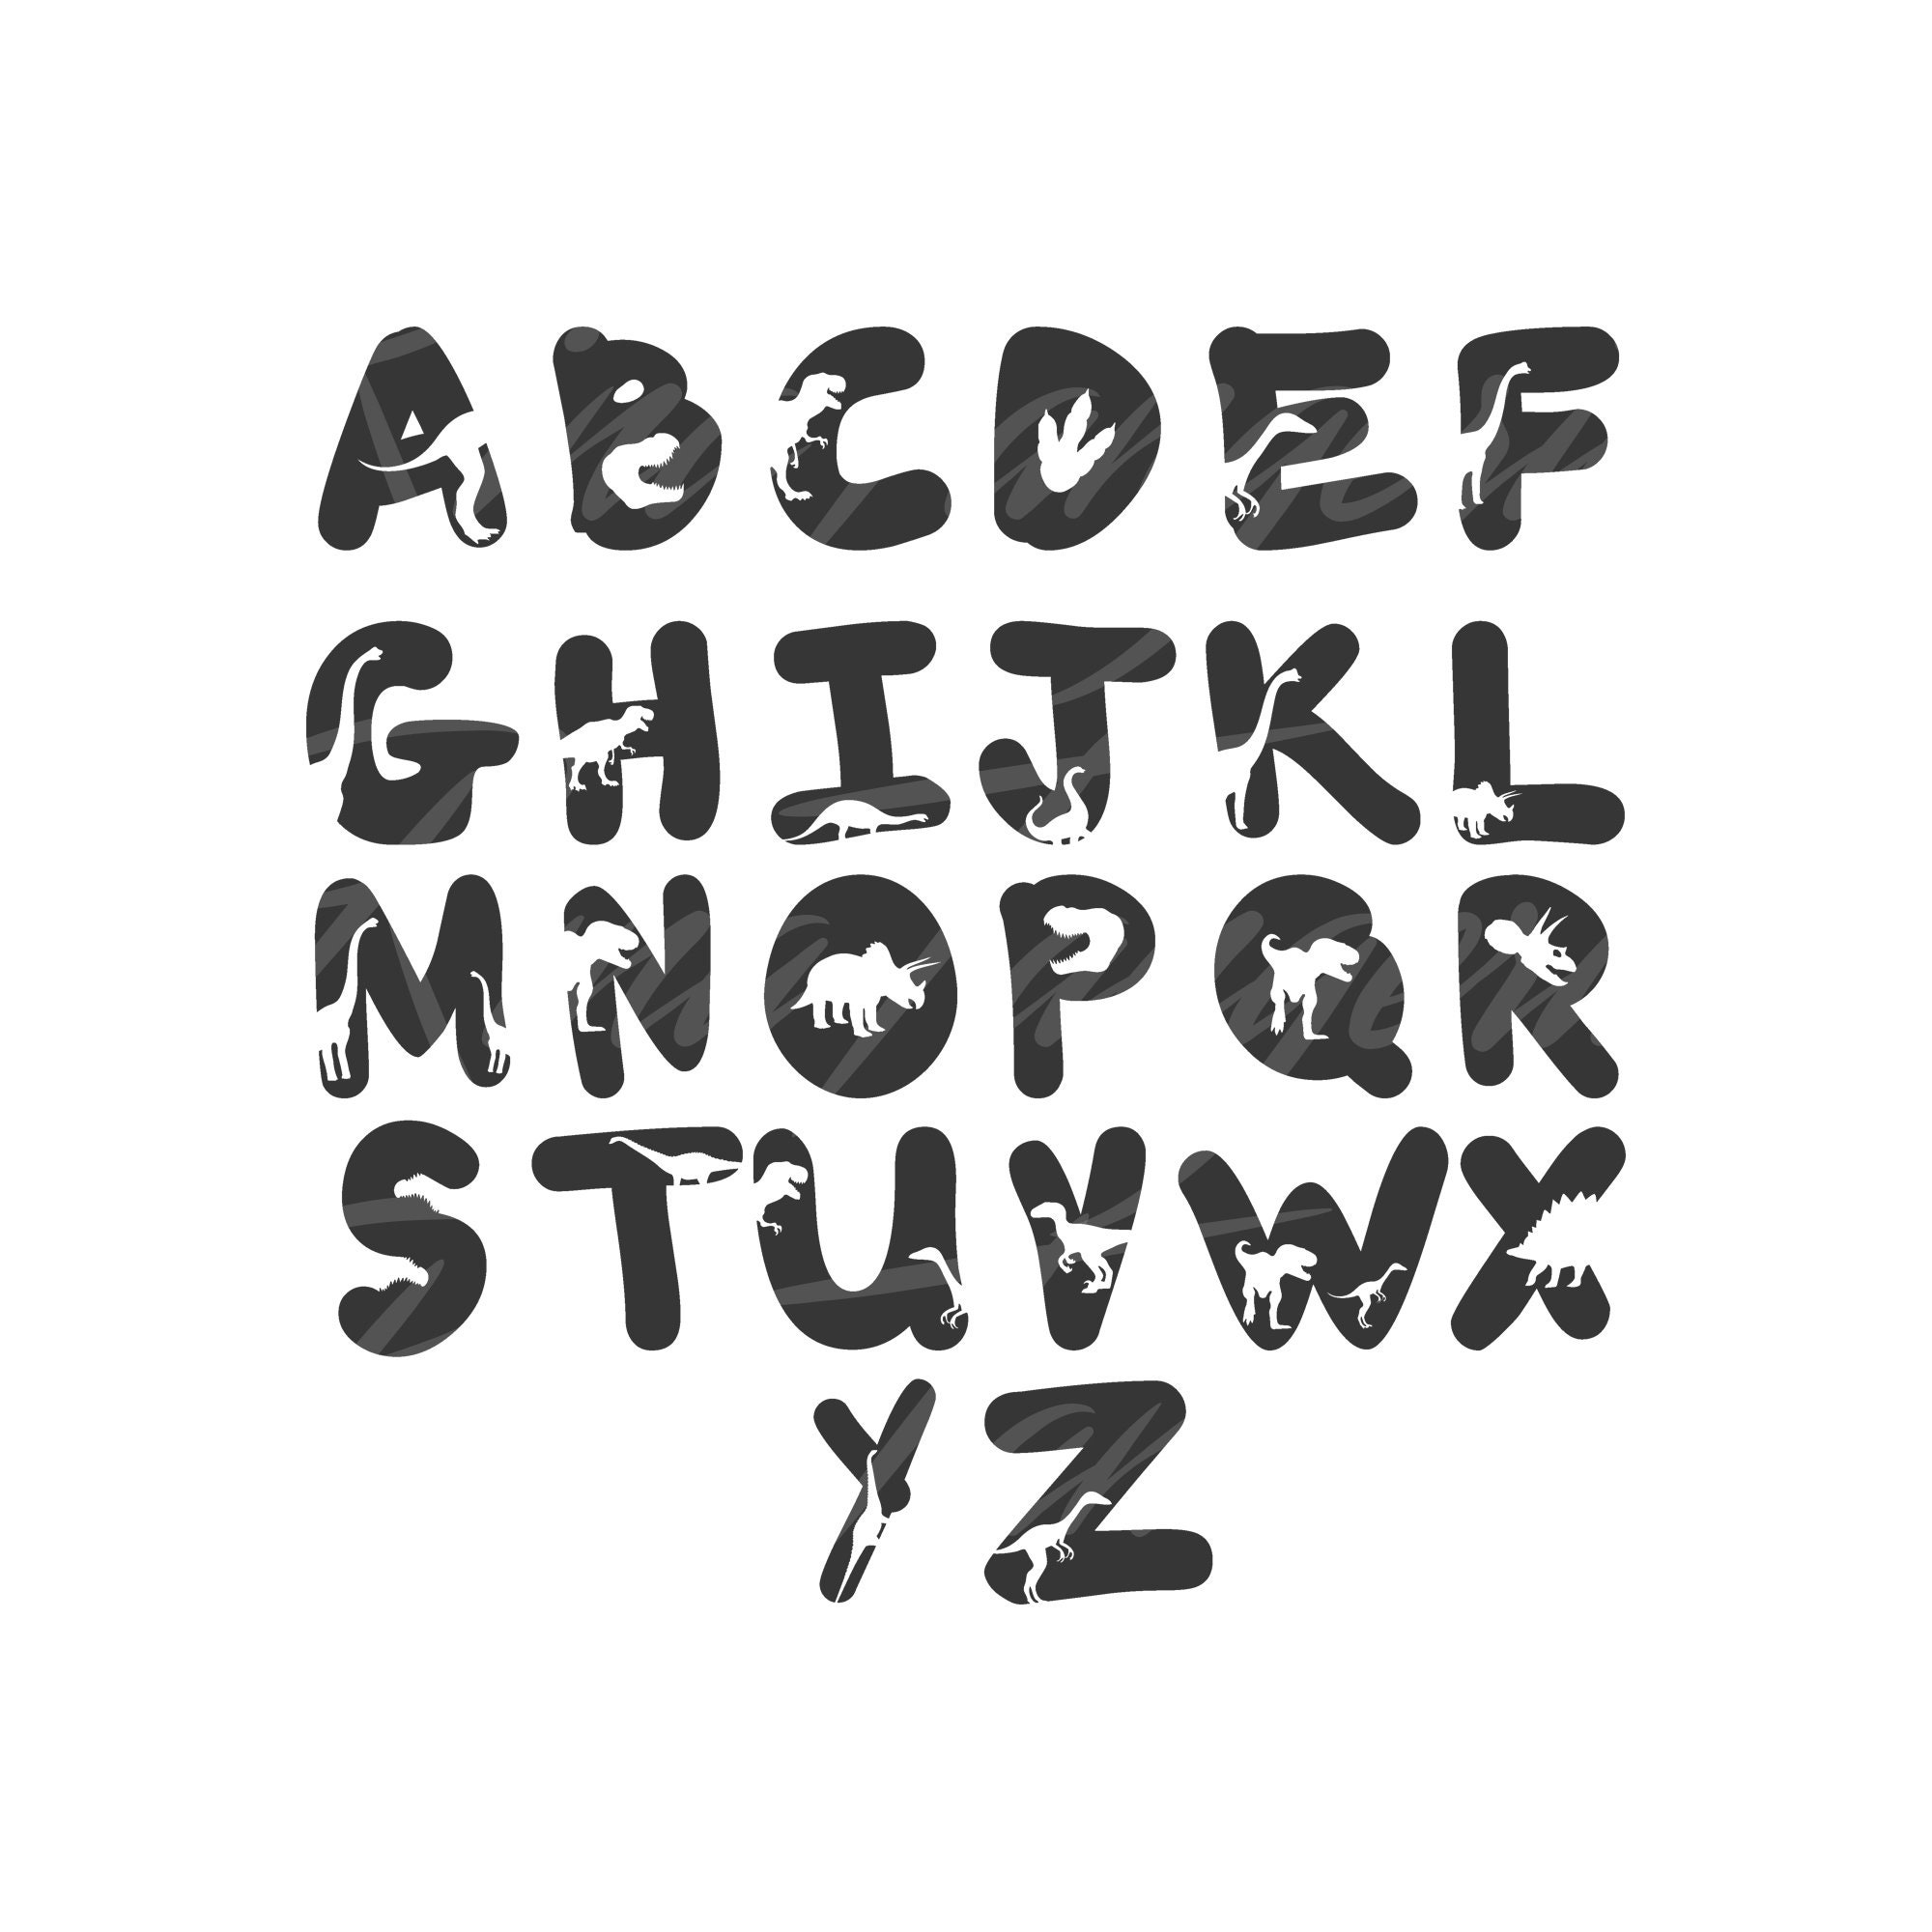 Download Dinosaur font svg png dxf Cutting files Cricut Cute svg   Etsy